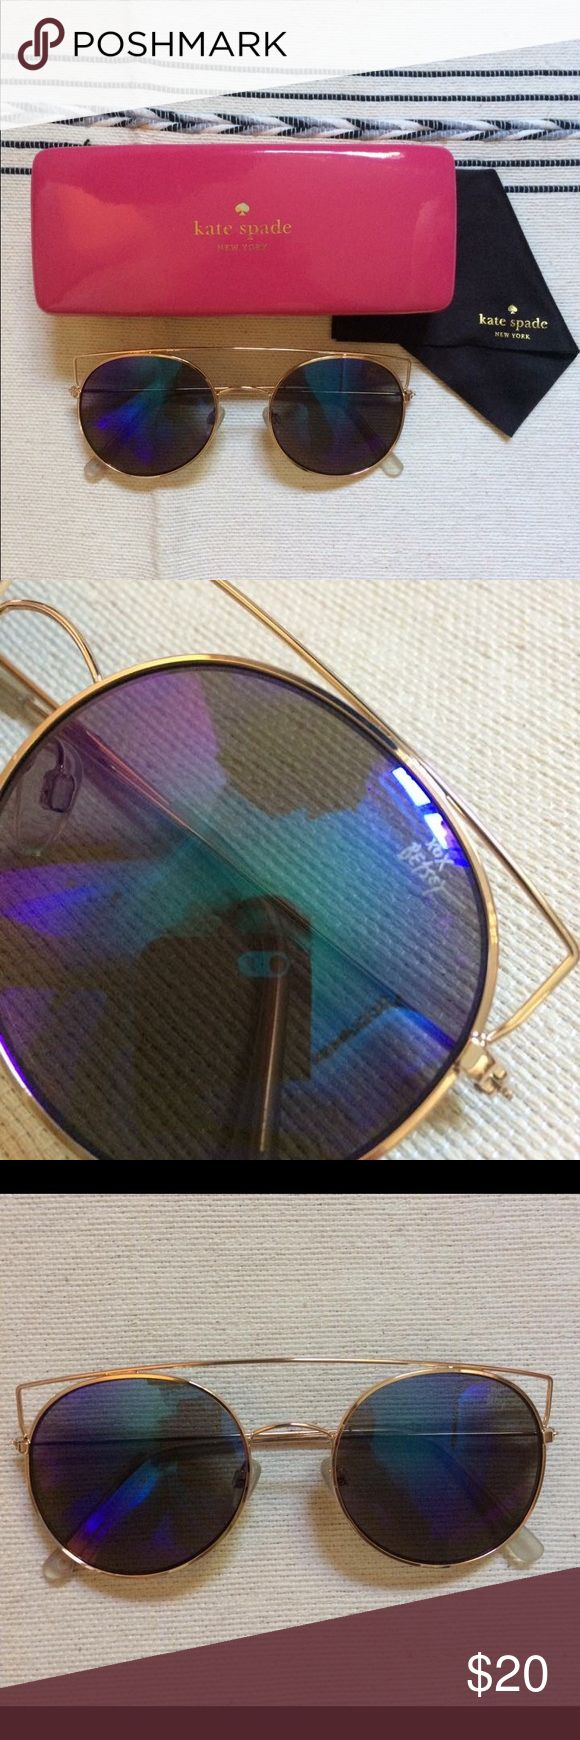 Betsy Johnson Cat Eye Sunglasses Iridescent lenses  Gold frame  Comes with Kate spade case and lense cleaner cloth Betsey Johnson Accessories Sunglasses